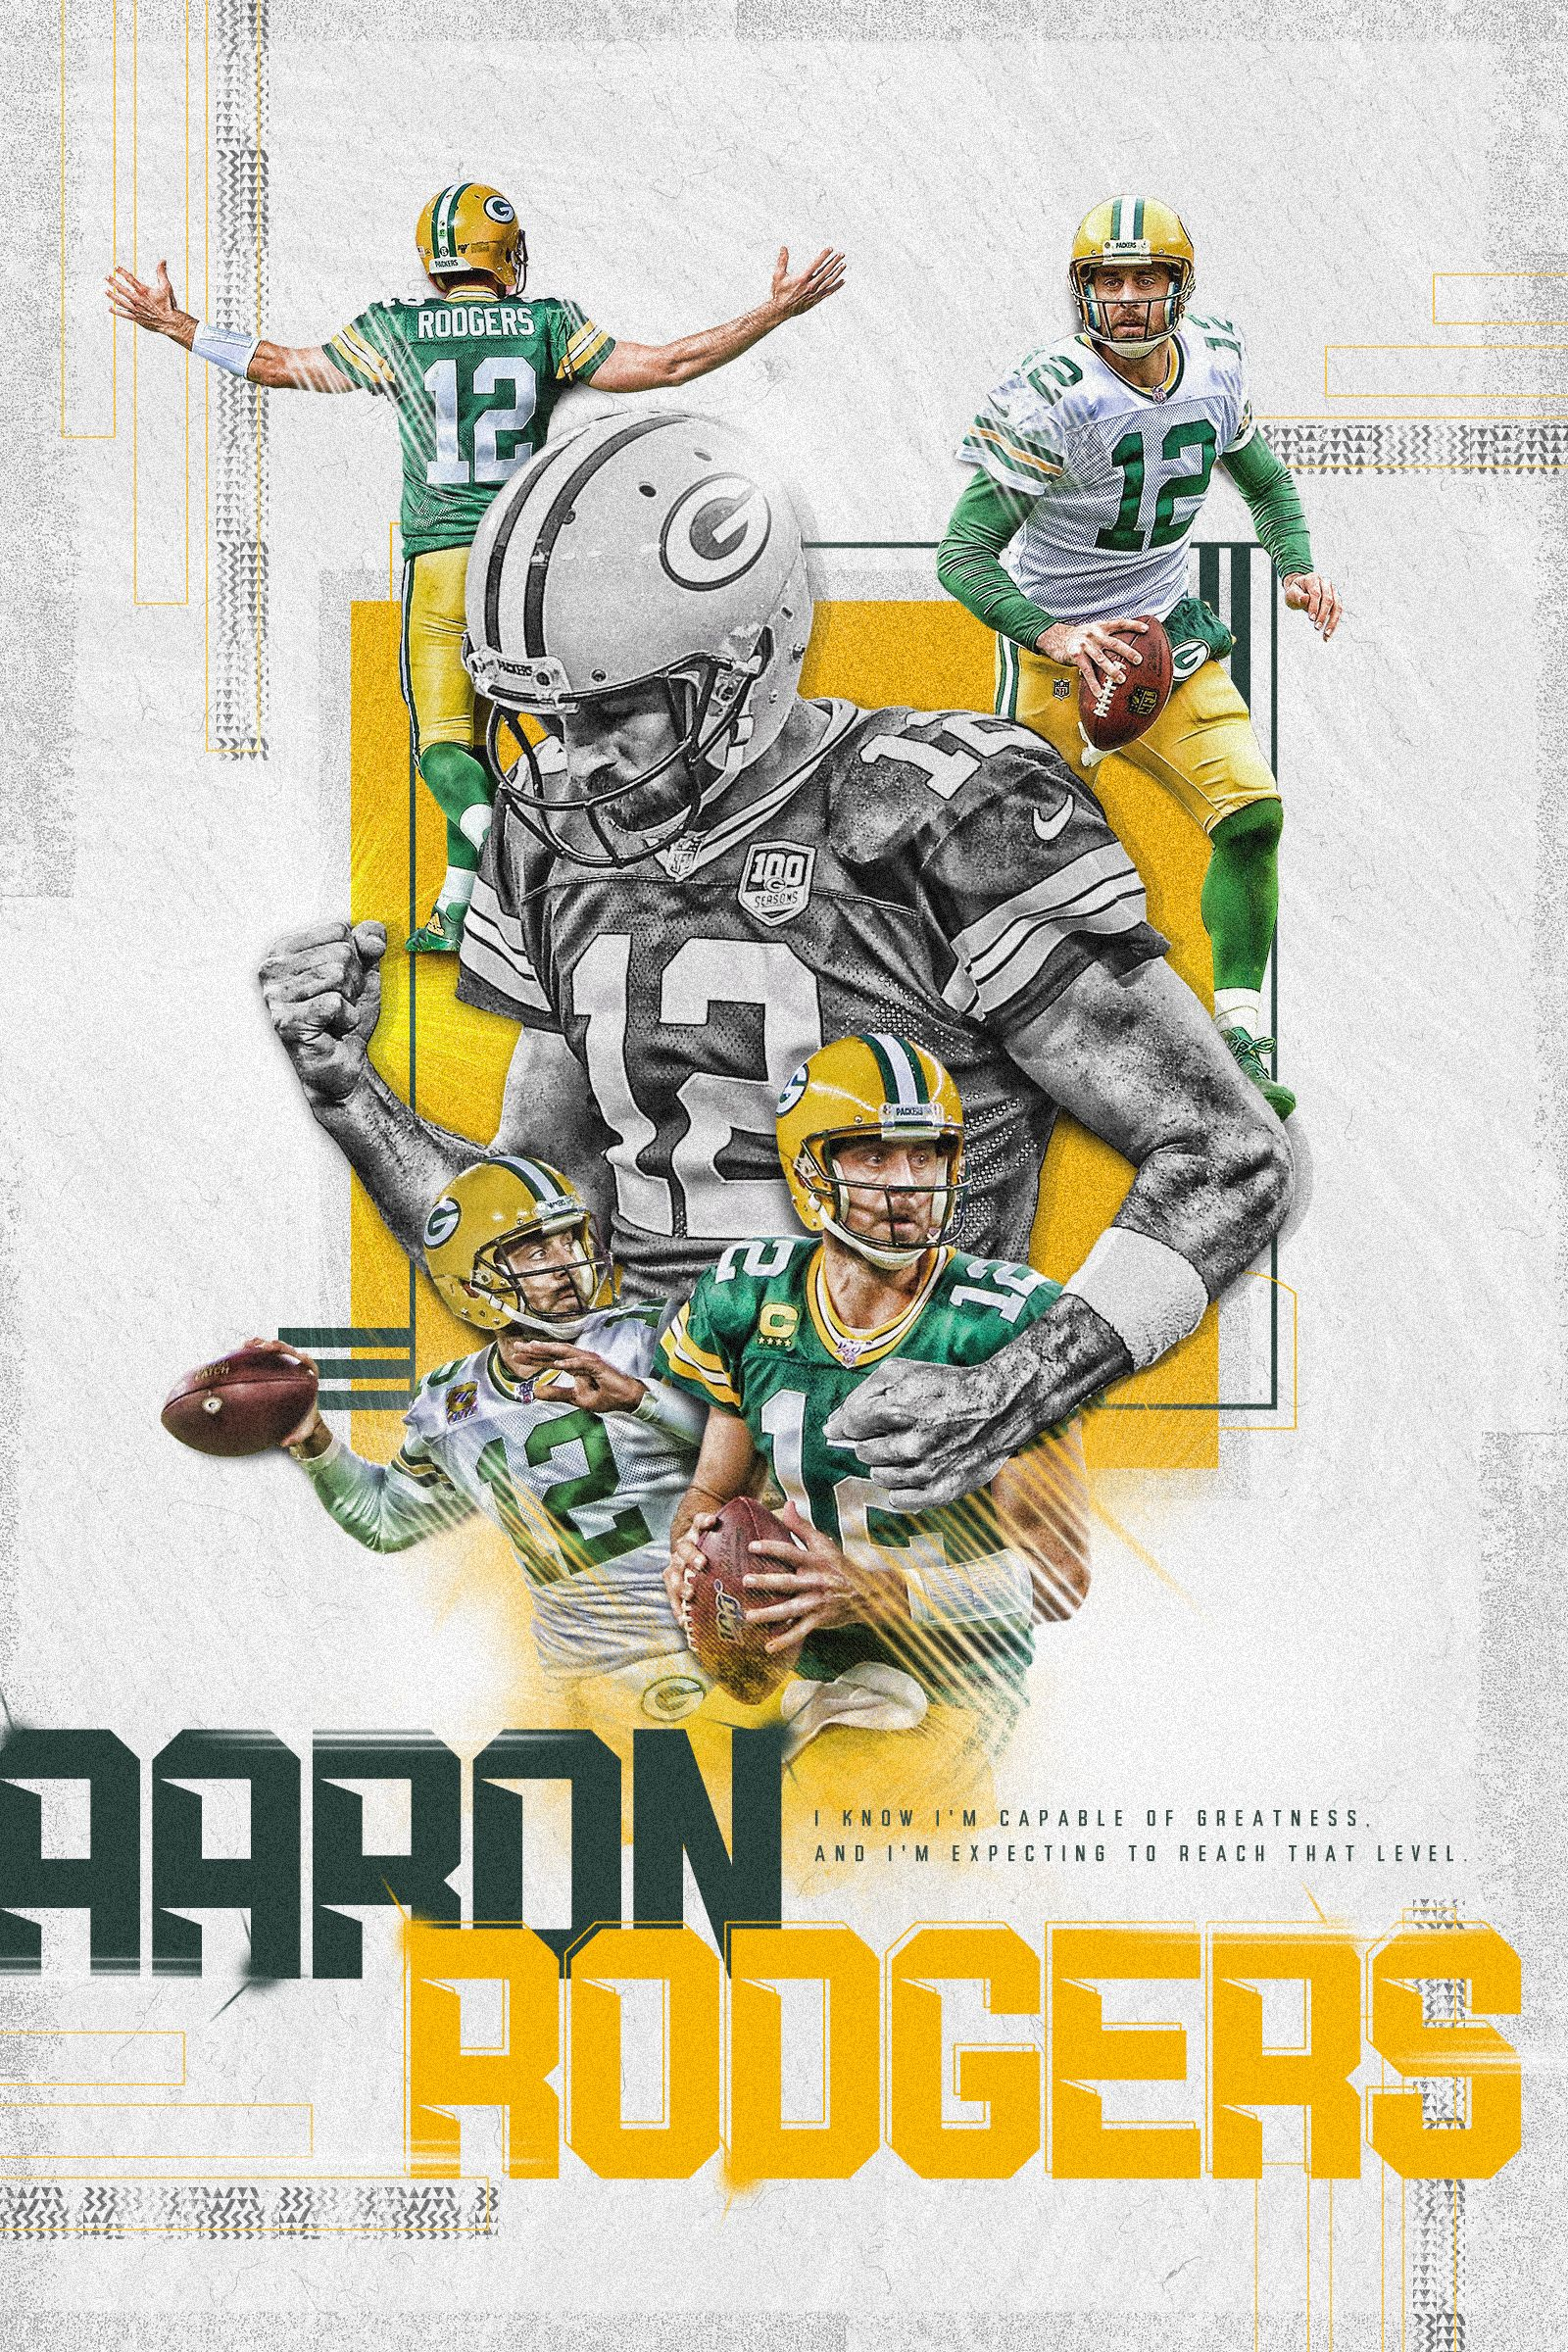 Aaron Rodgers The Goat In 2020 Poster Design Design Working Sports Design